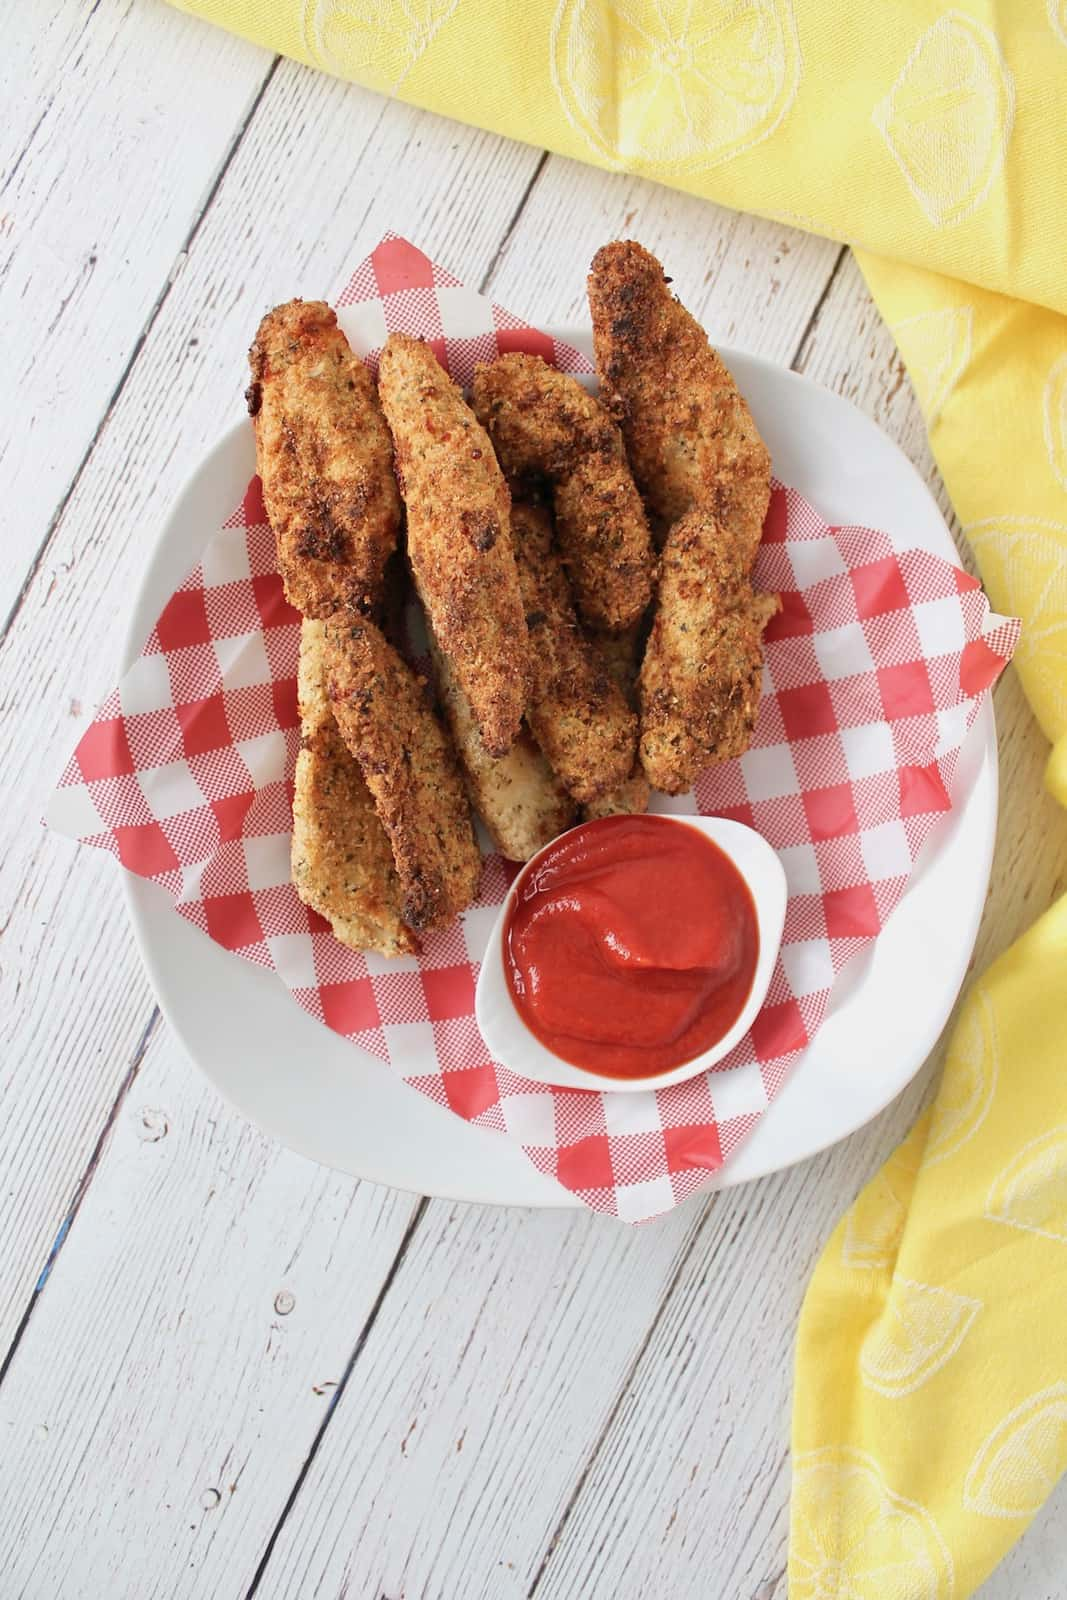 Overhead shot of finished chicken fingers in a white shallow bowl lined with red and white checkered picnic paper with a white dish of ketchup in the bowl on a white wooden surface with a yellow dish towel next to it